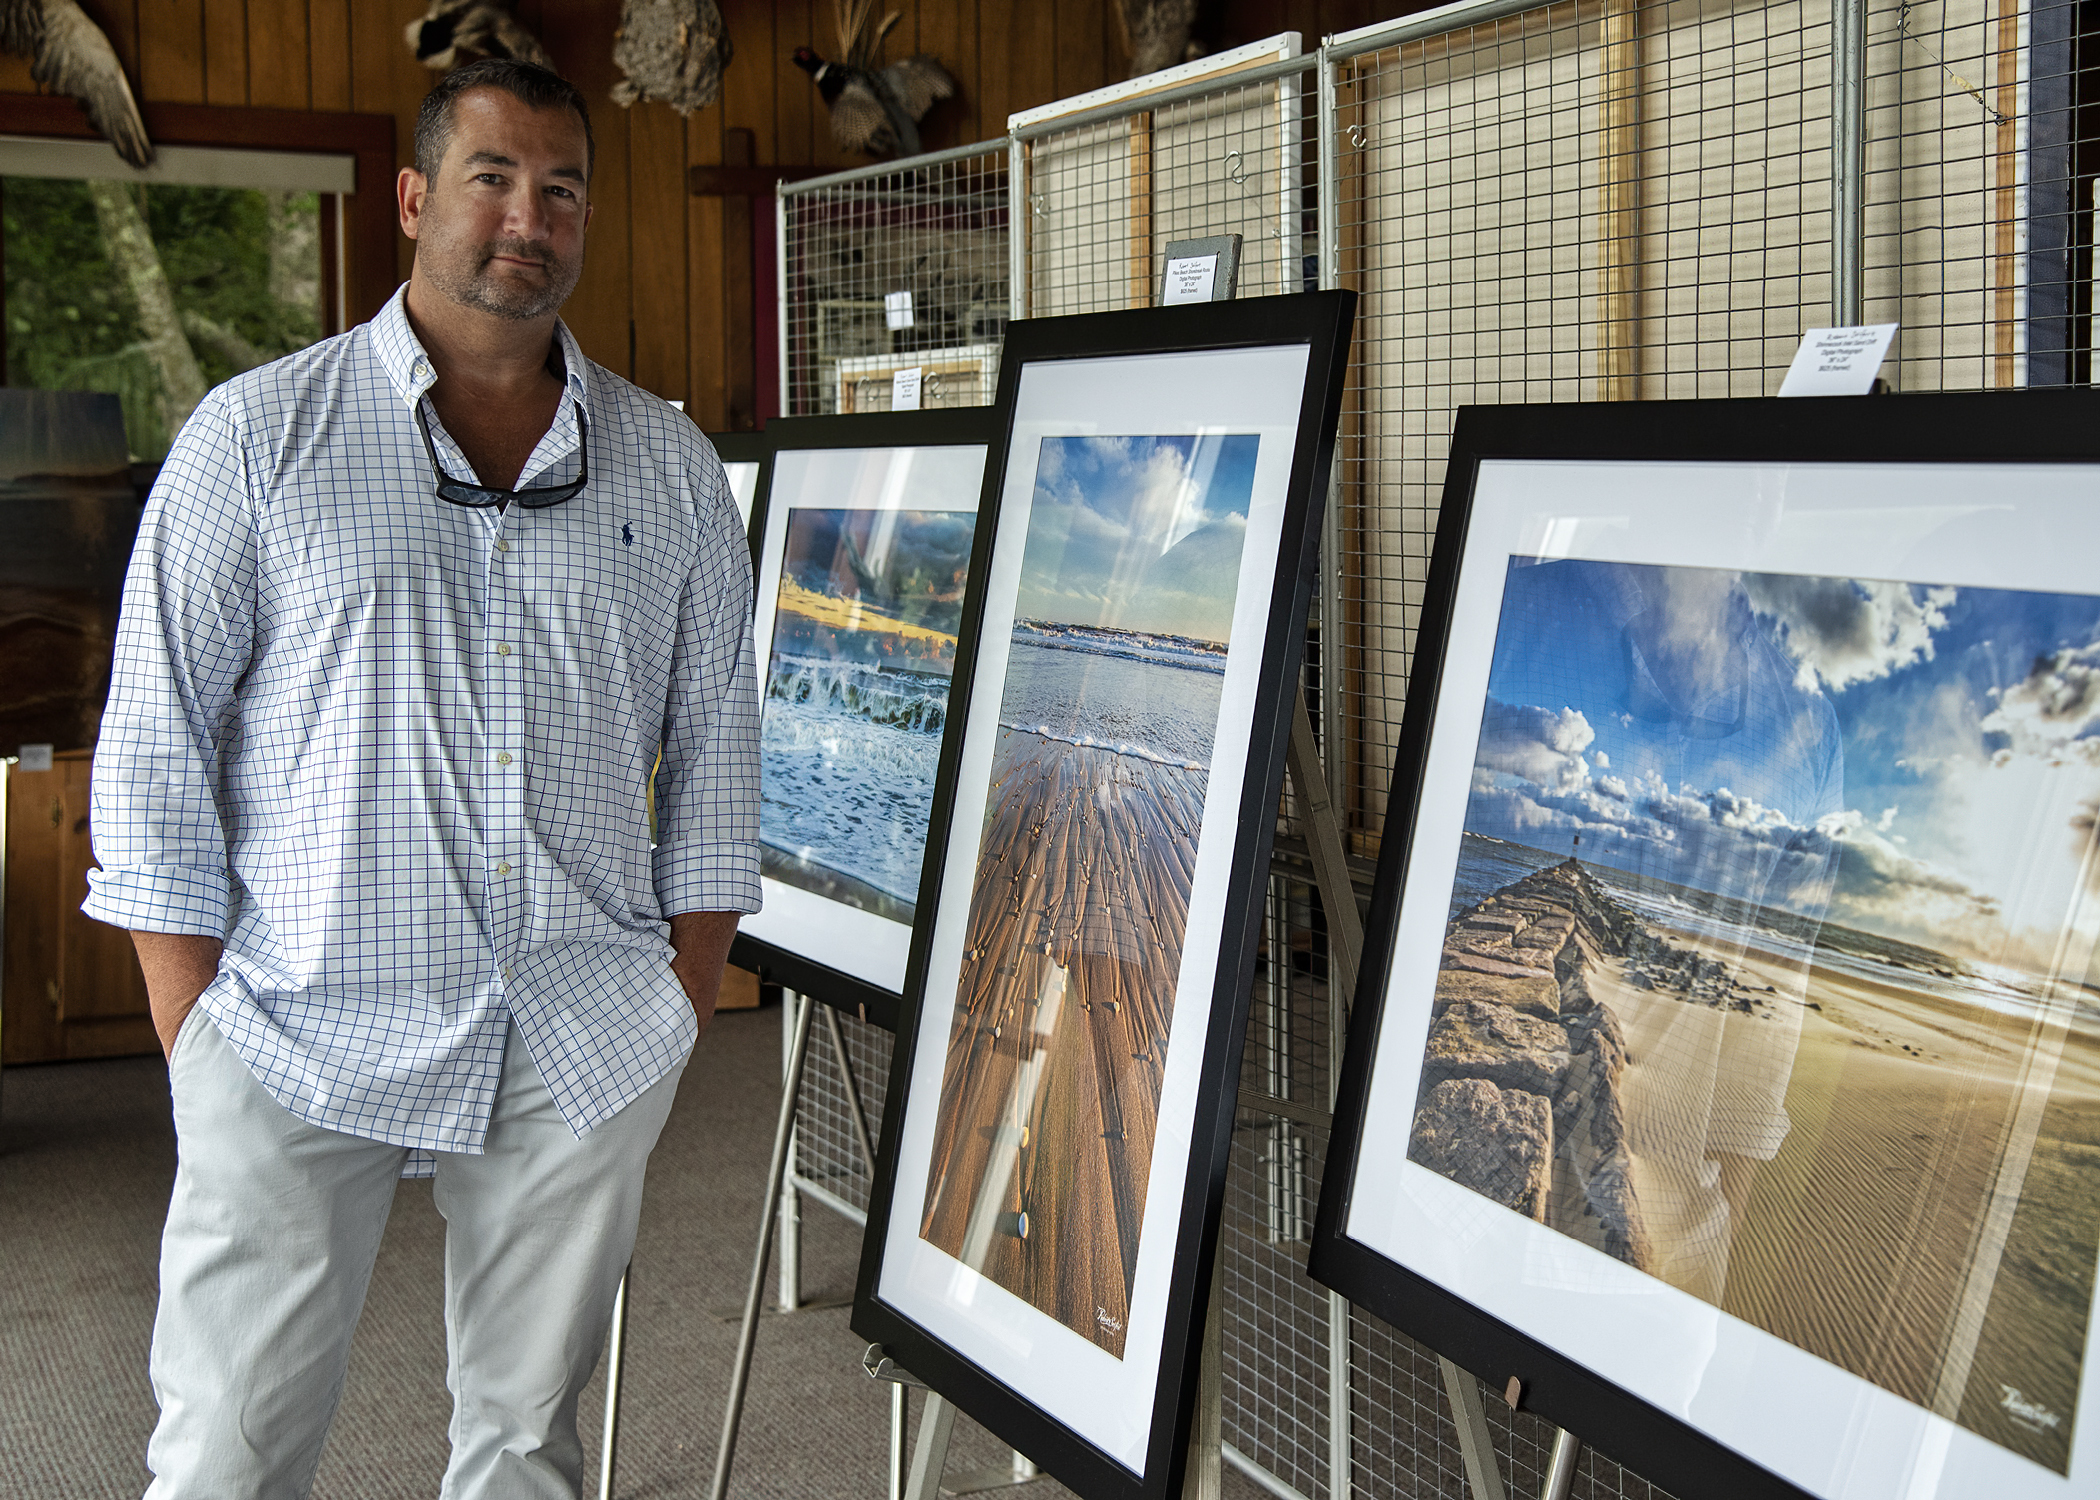 """Rob Seifert, by his photography, at an artists showcase, """"Visions of Nature Art Exhibition,"""" curated by Elizabeth Hartman of HartmanonHudson.com, at the Quogue Wildlife Refuge on Saturday. A portion of the evening's sales benefited the refuge."""